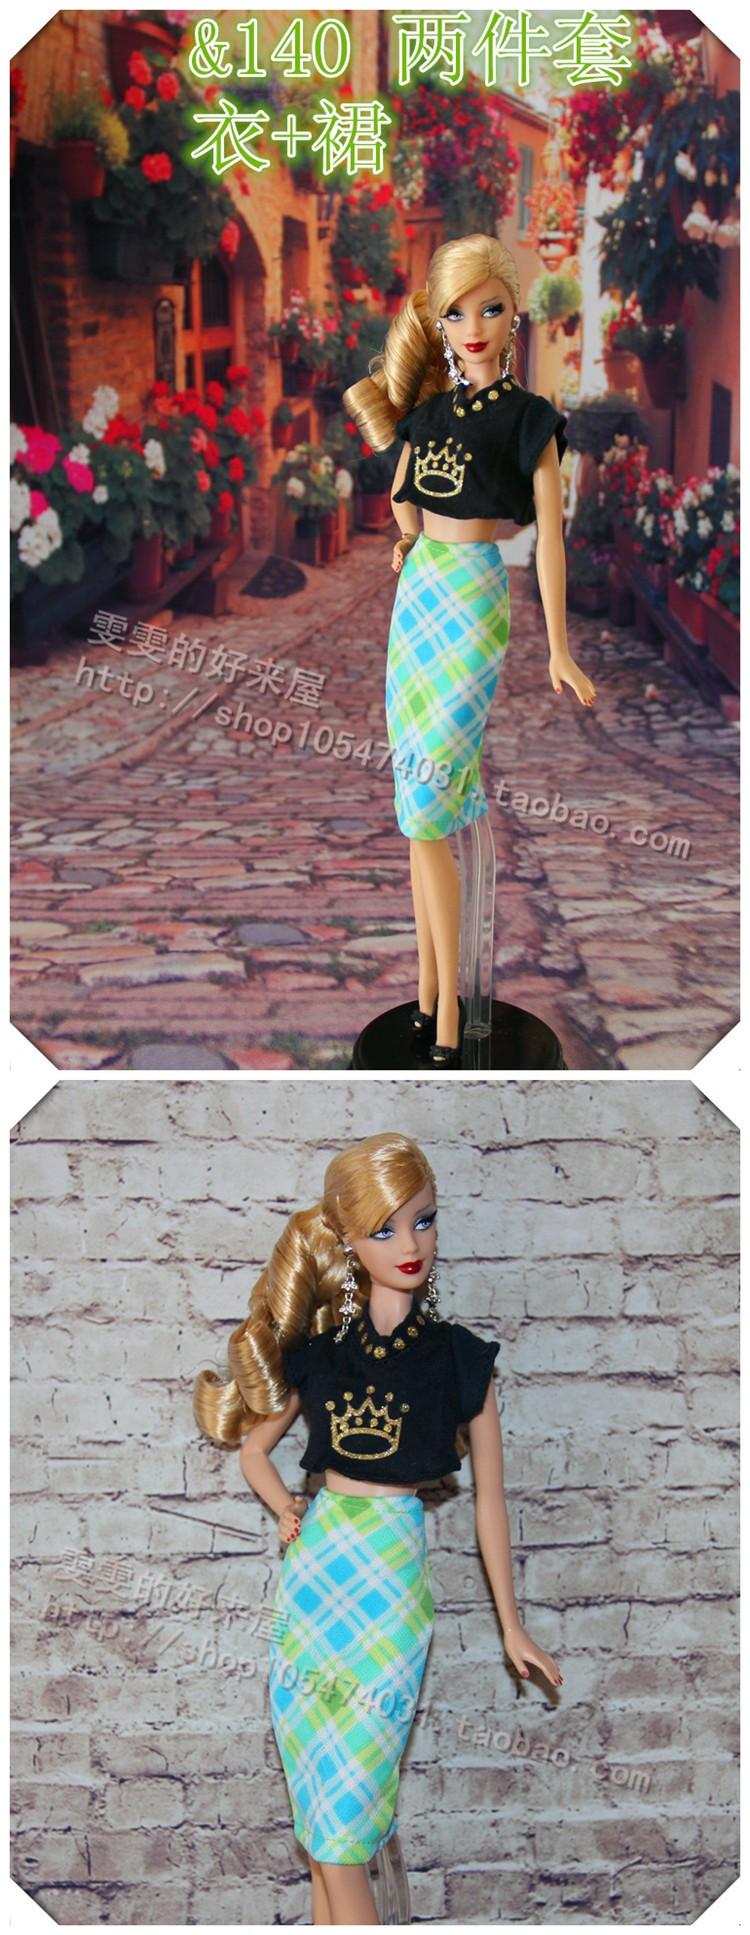 2016 new Stunning Clothes Trend Handmade Attire & Garments  For Barbie Doll,doll equipment for barbie